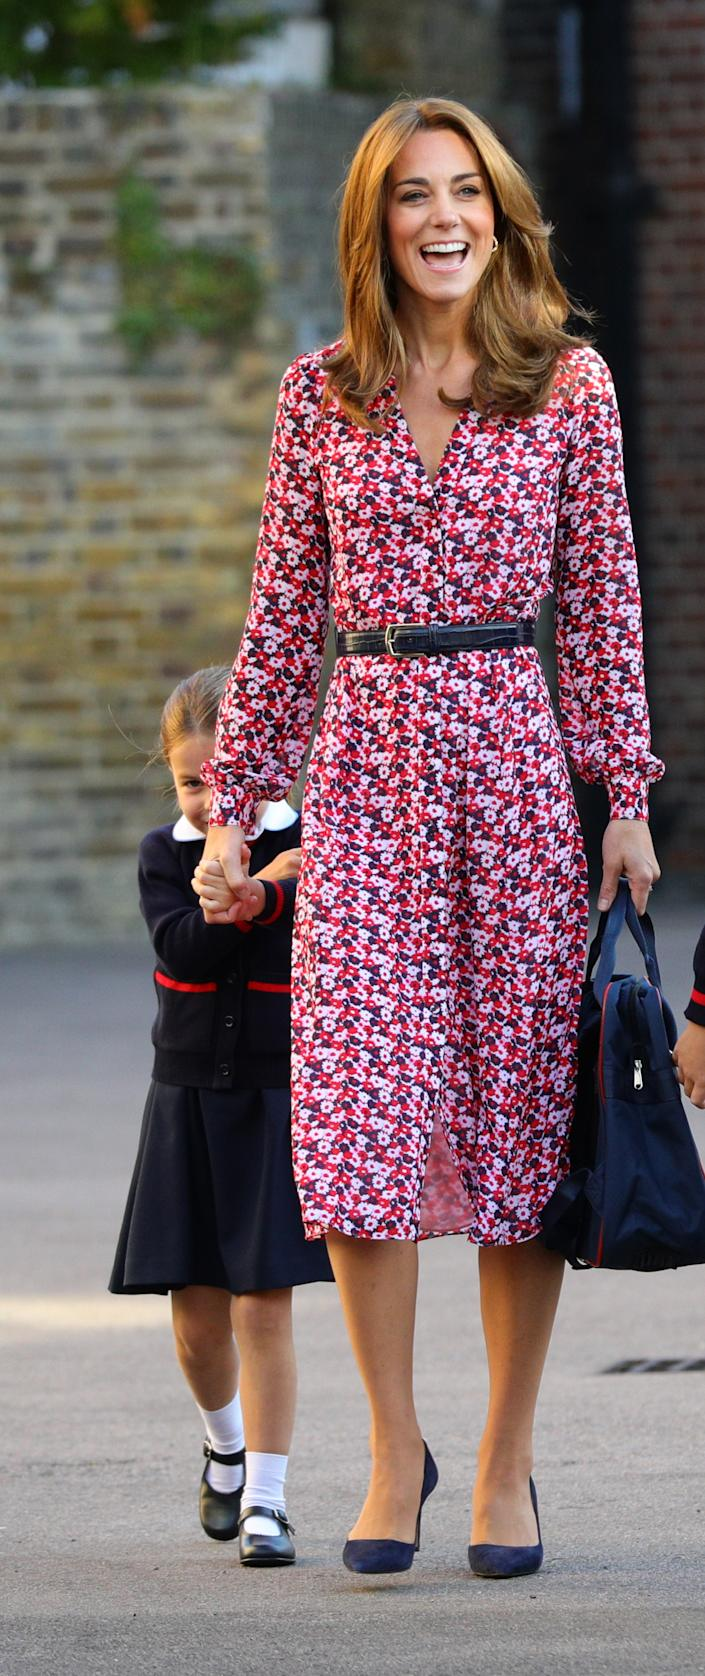 The Duchess of Cambridge wore a statement Michael Kors dress for the school drop-off [Photo: Getty]